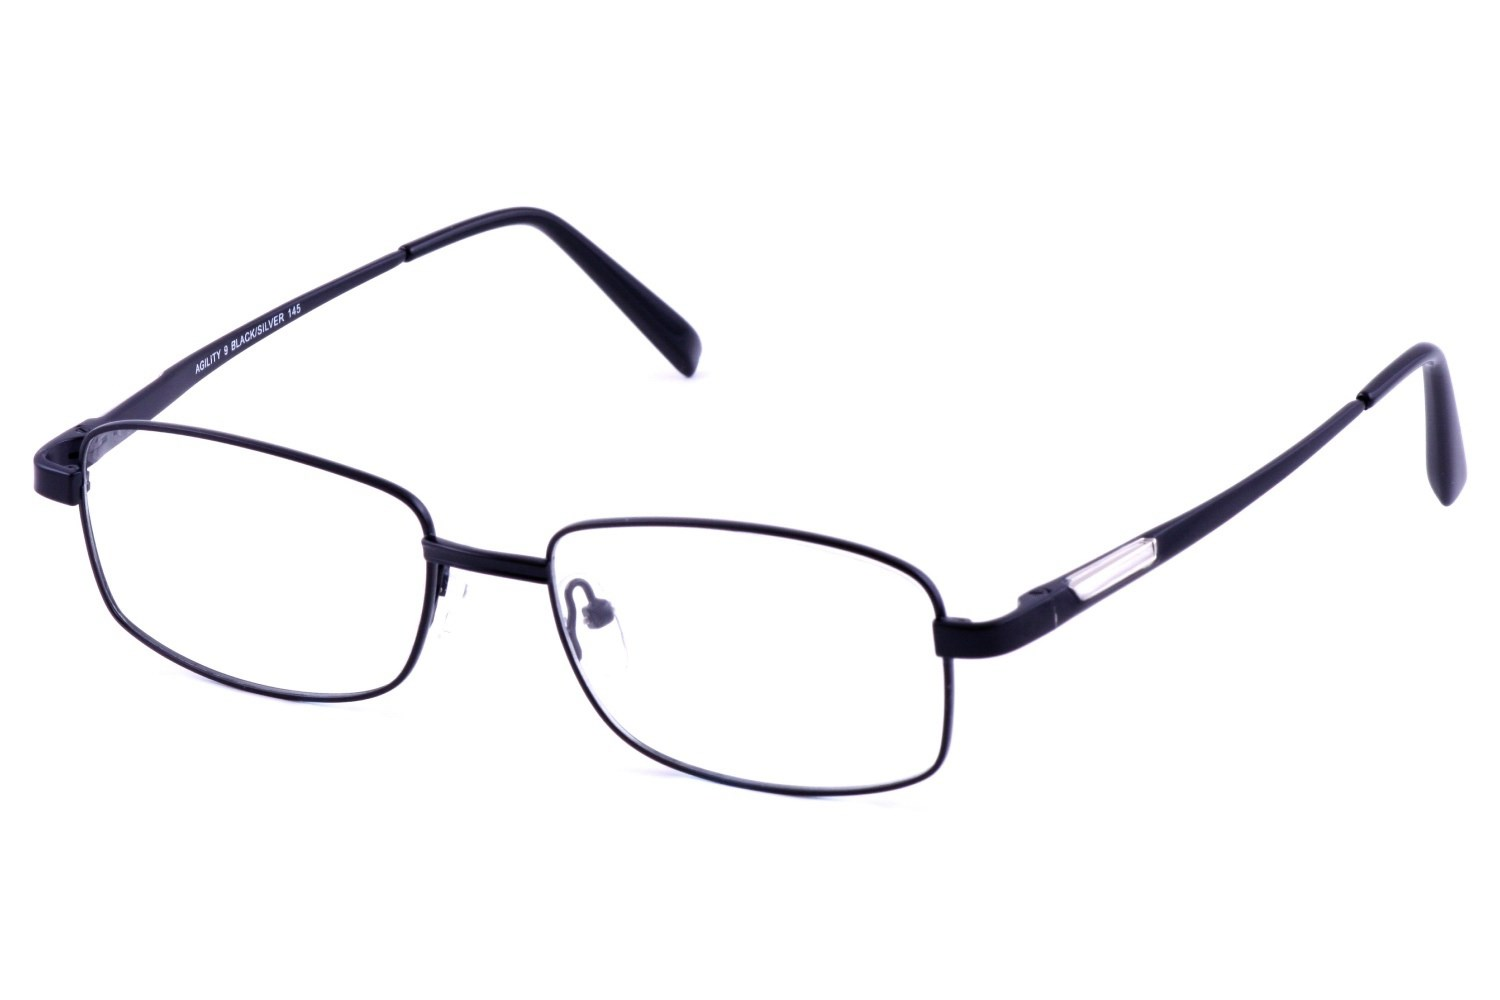 Agility 9 Prescription Eyeglasses Frames